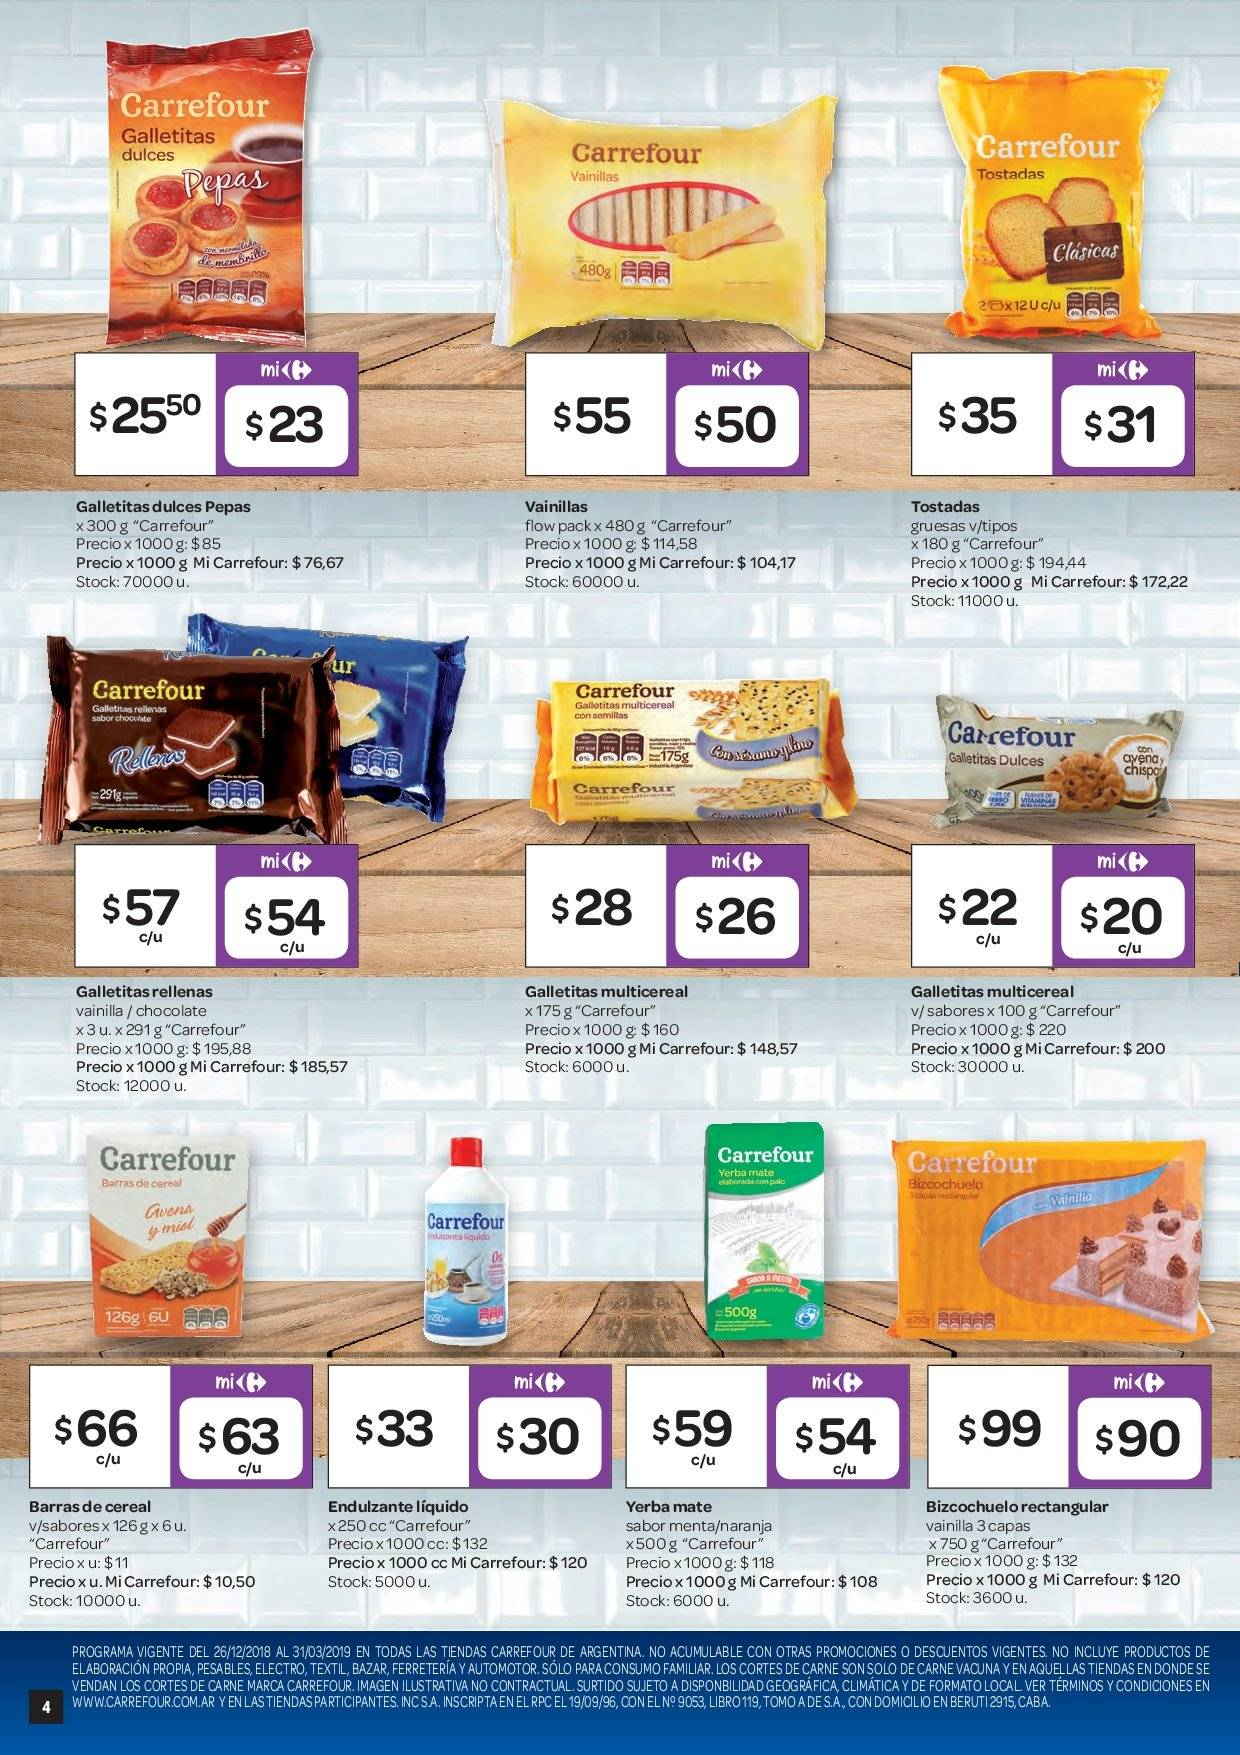 Folleto actual Carrefour - 26.12.2018 - 31.3.2019 - Ventas - chocolate 4ba8ecdc2c6b